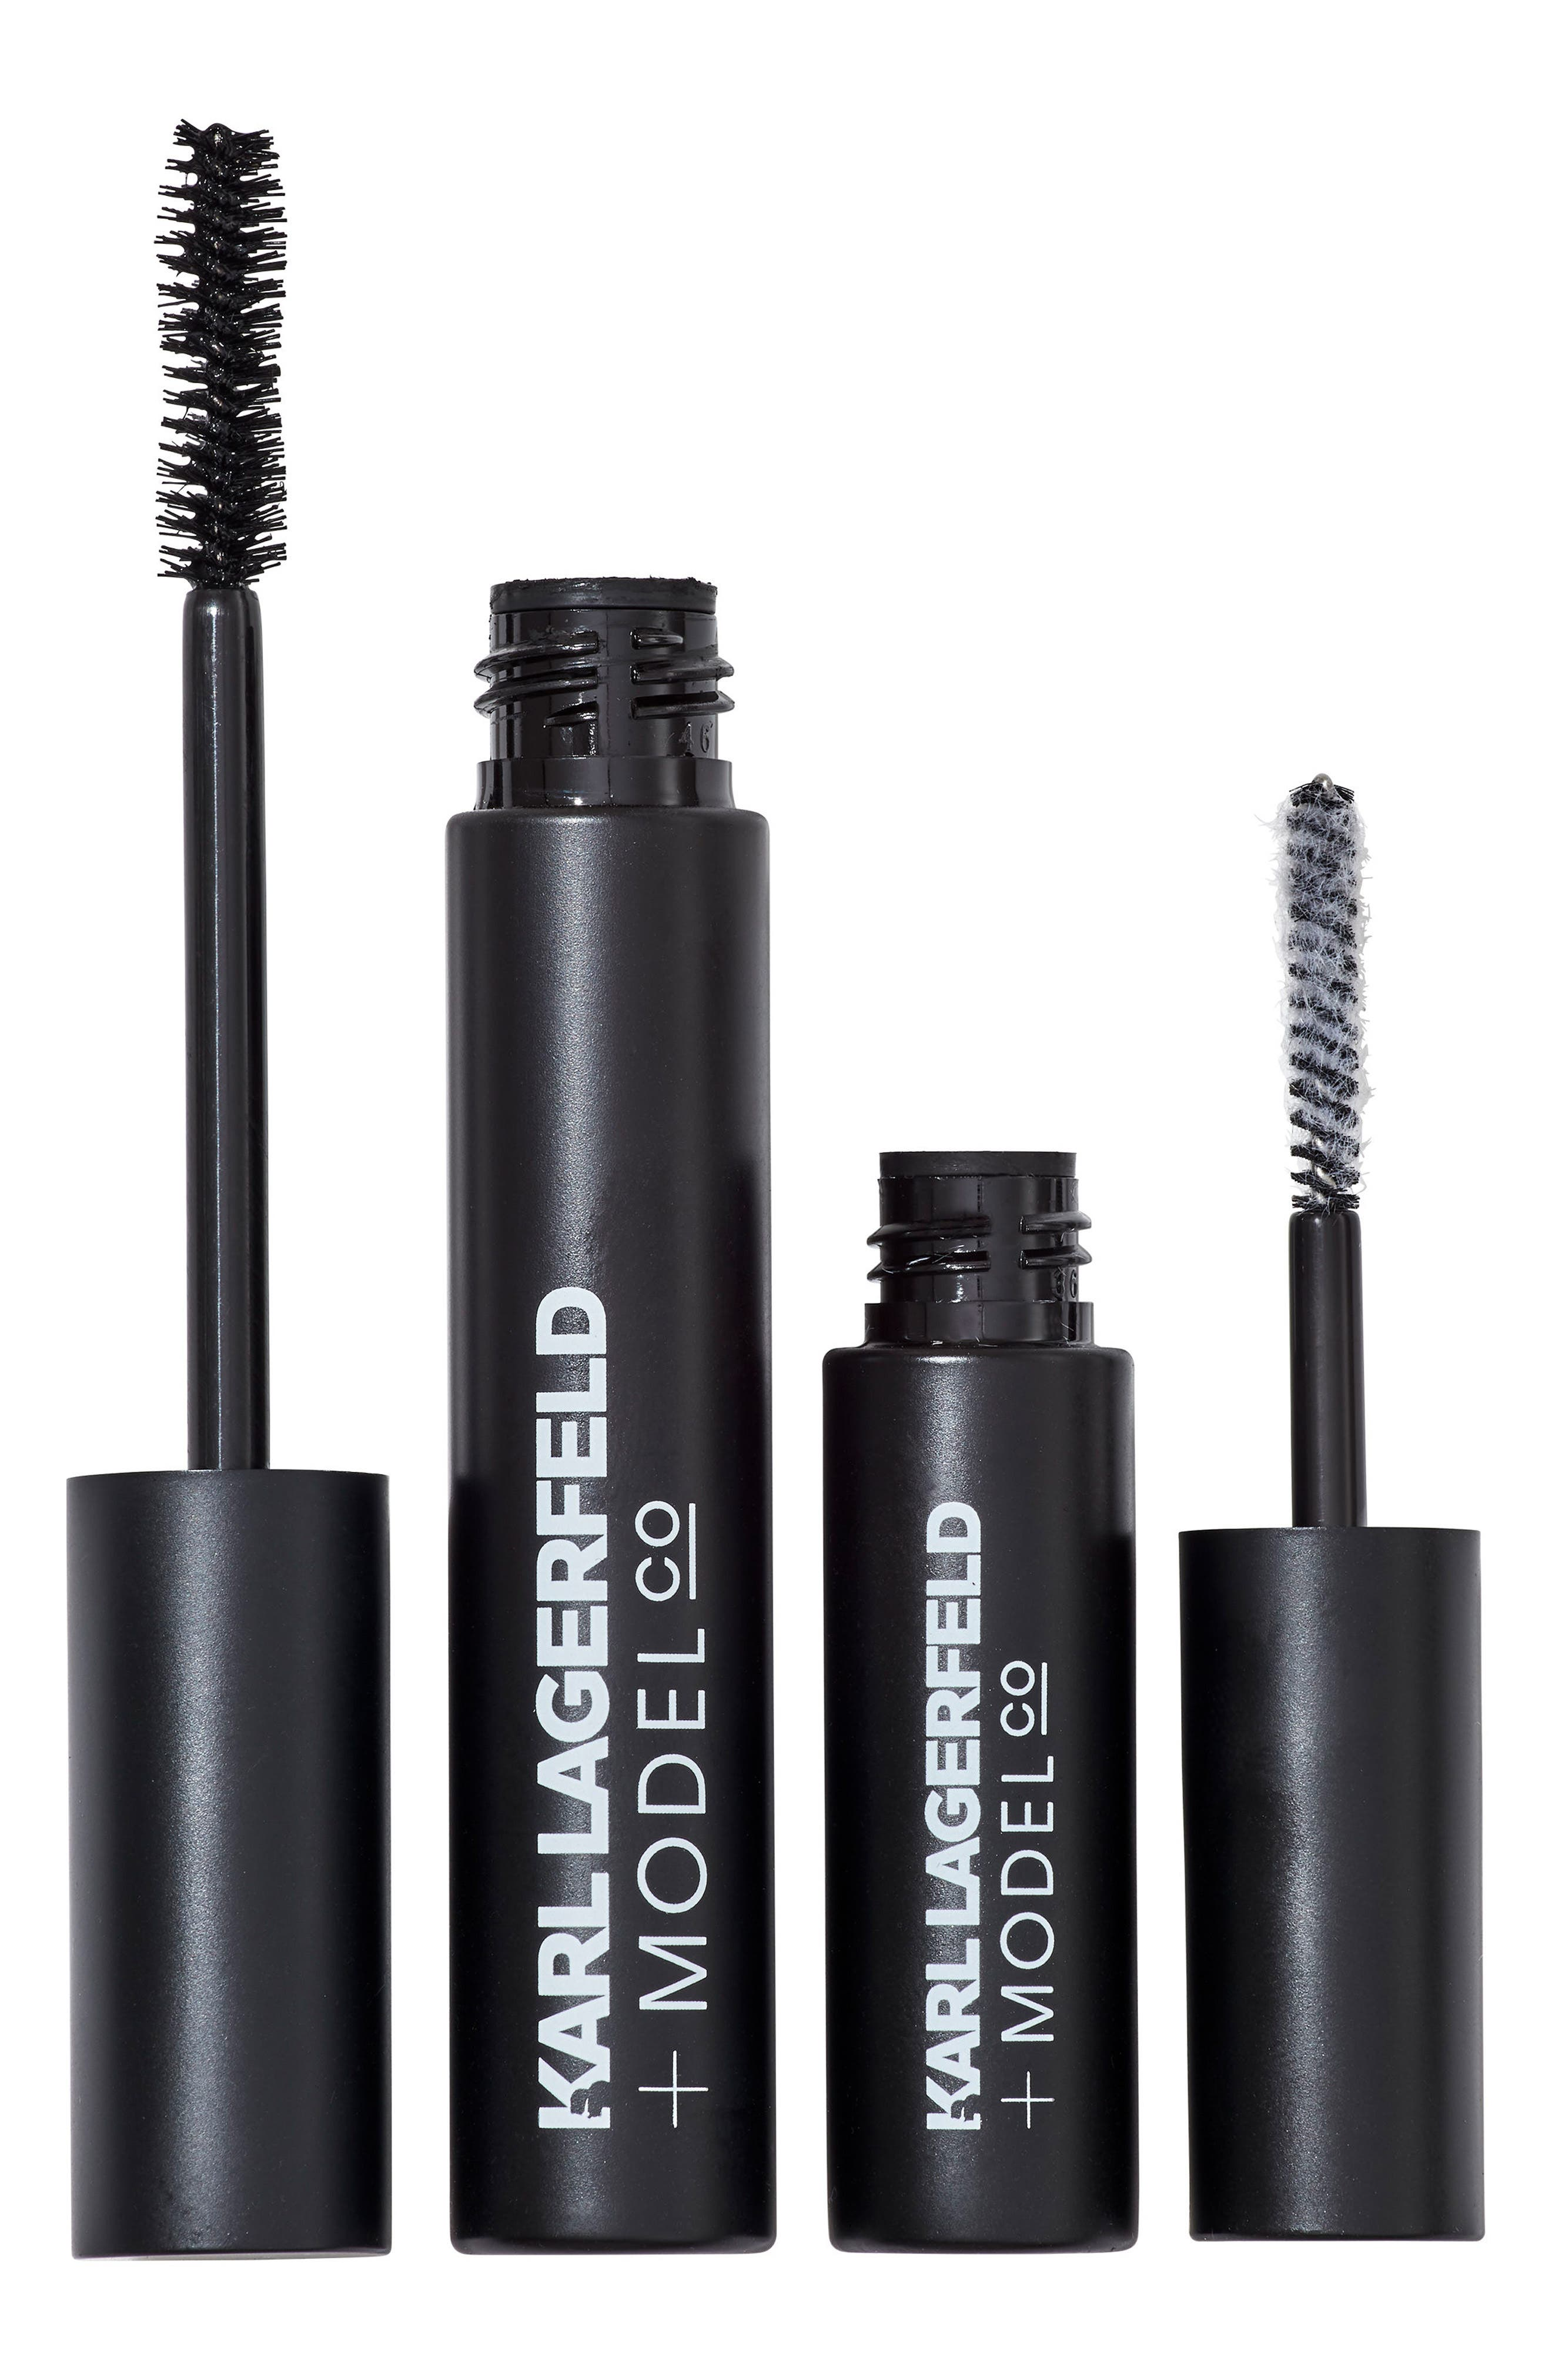 KARL LAGERFELD + MODELCO Kiss Me Karl Fibre Lash Brush-On False Lashes Set (Nordstrom Exclusive)